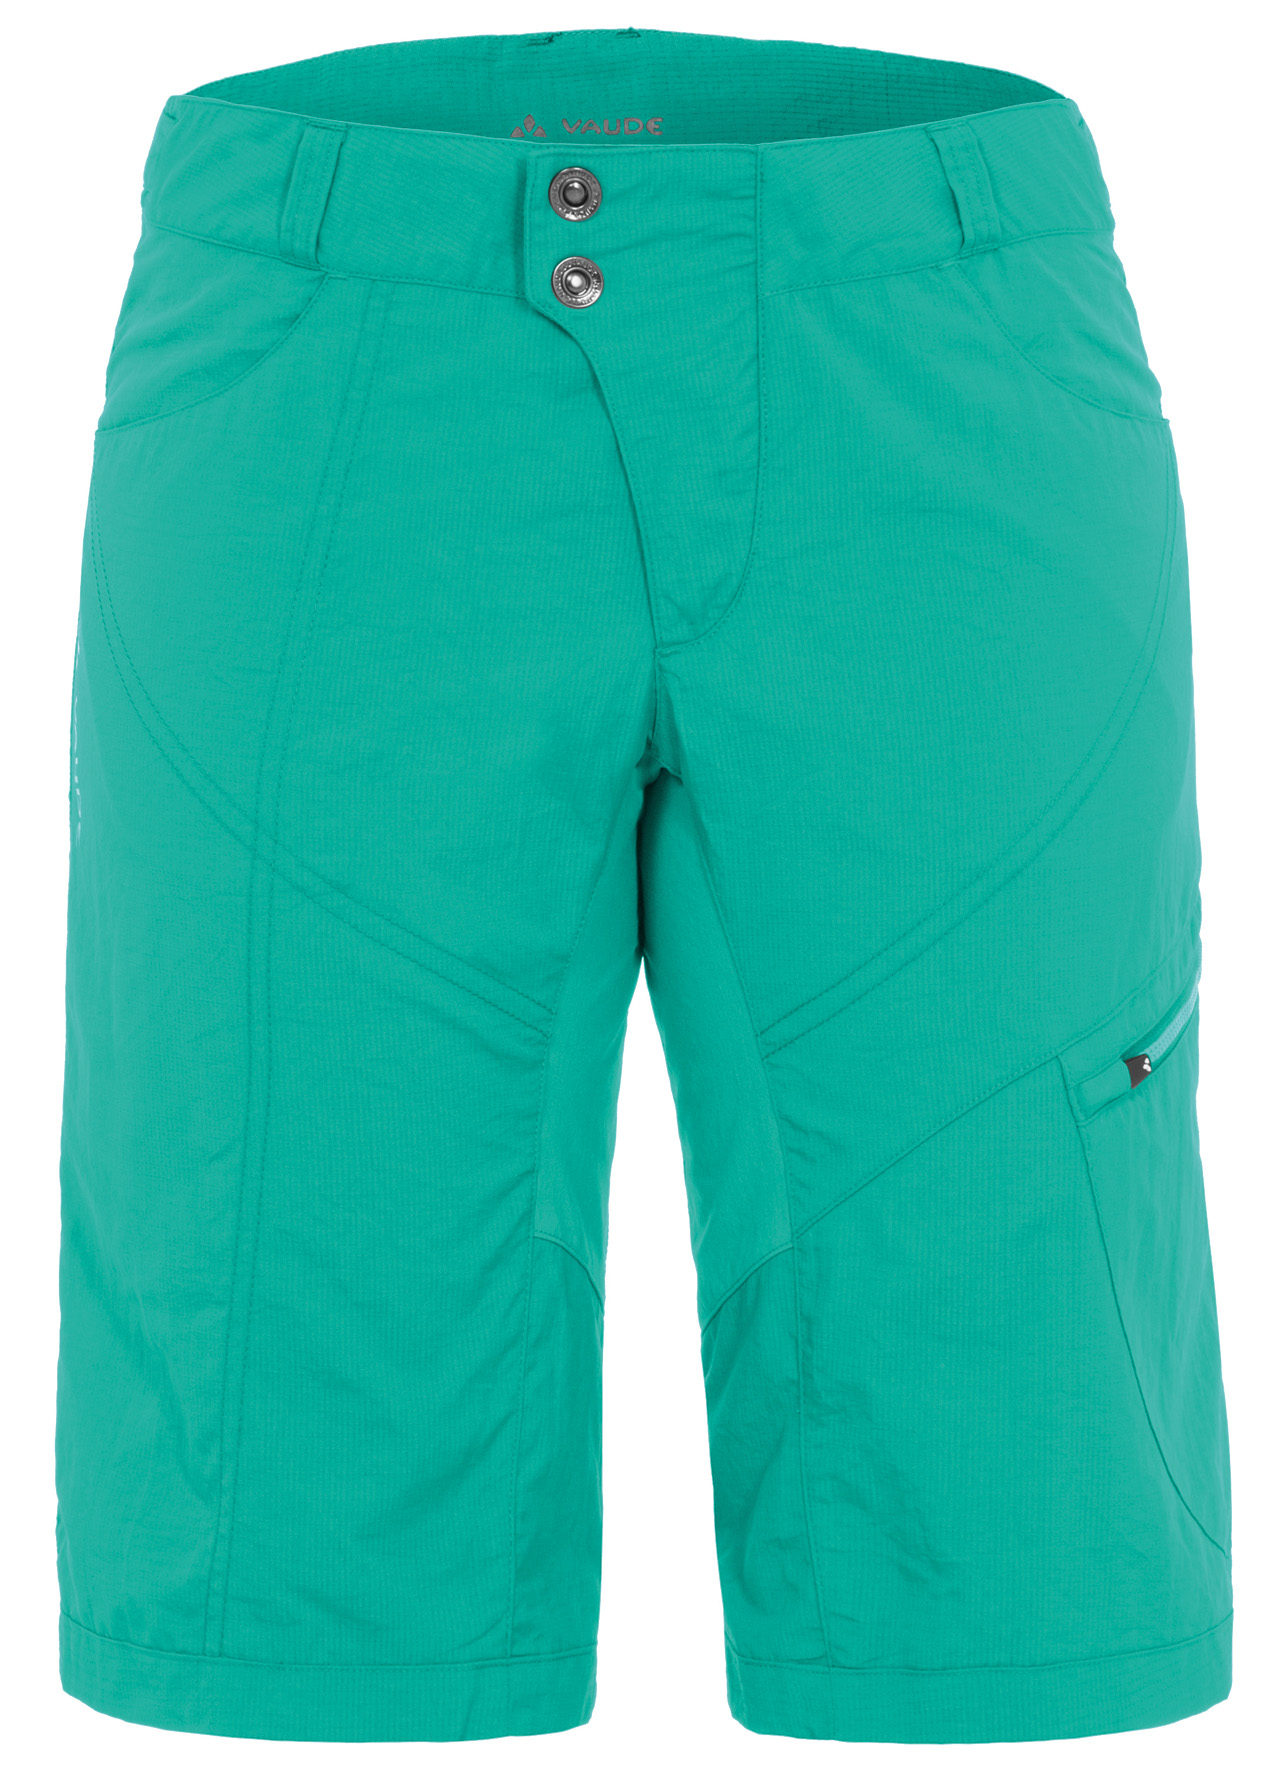 Women´s Tamaro Shorts lotus green Größe 36 - schneider-sports